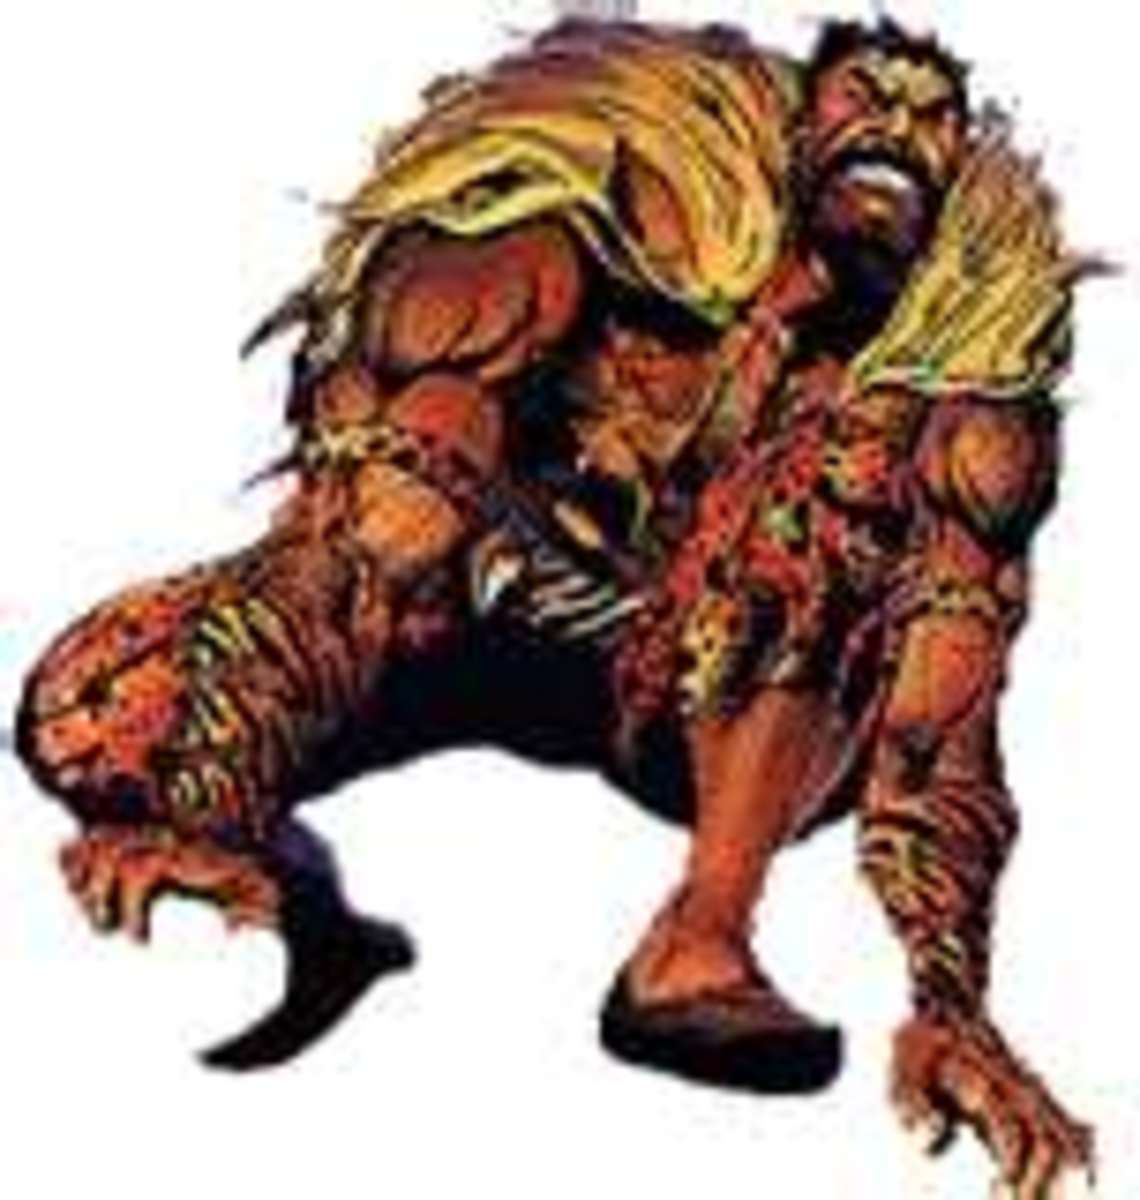 Kraven the Hunter would not only chase the Spiderman, but become him in an attempt to destroy the good image.